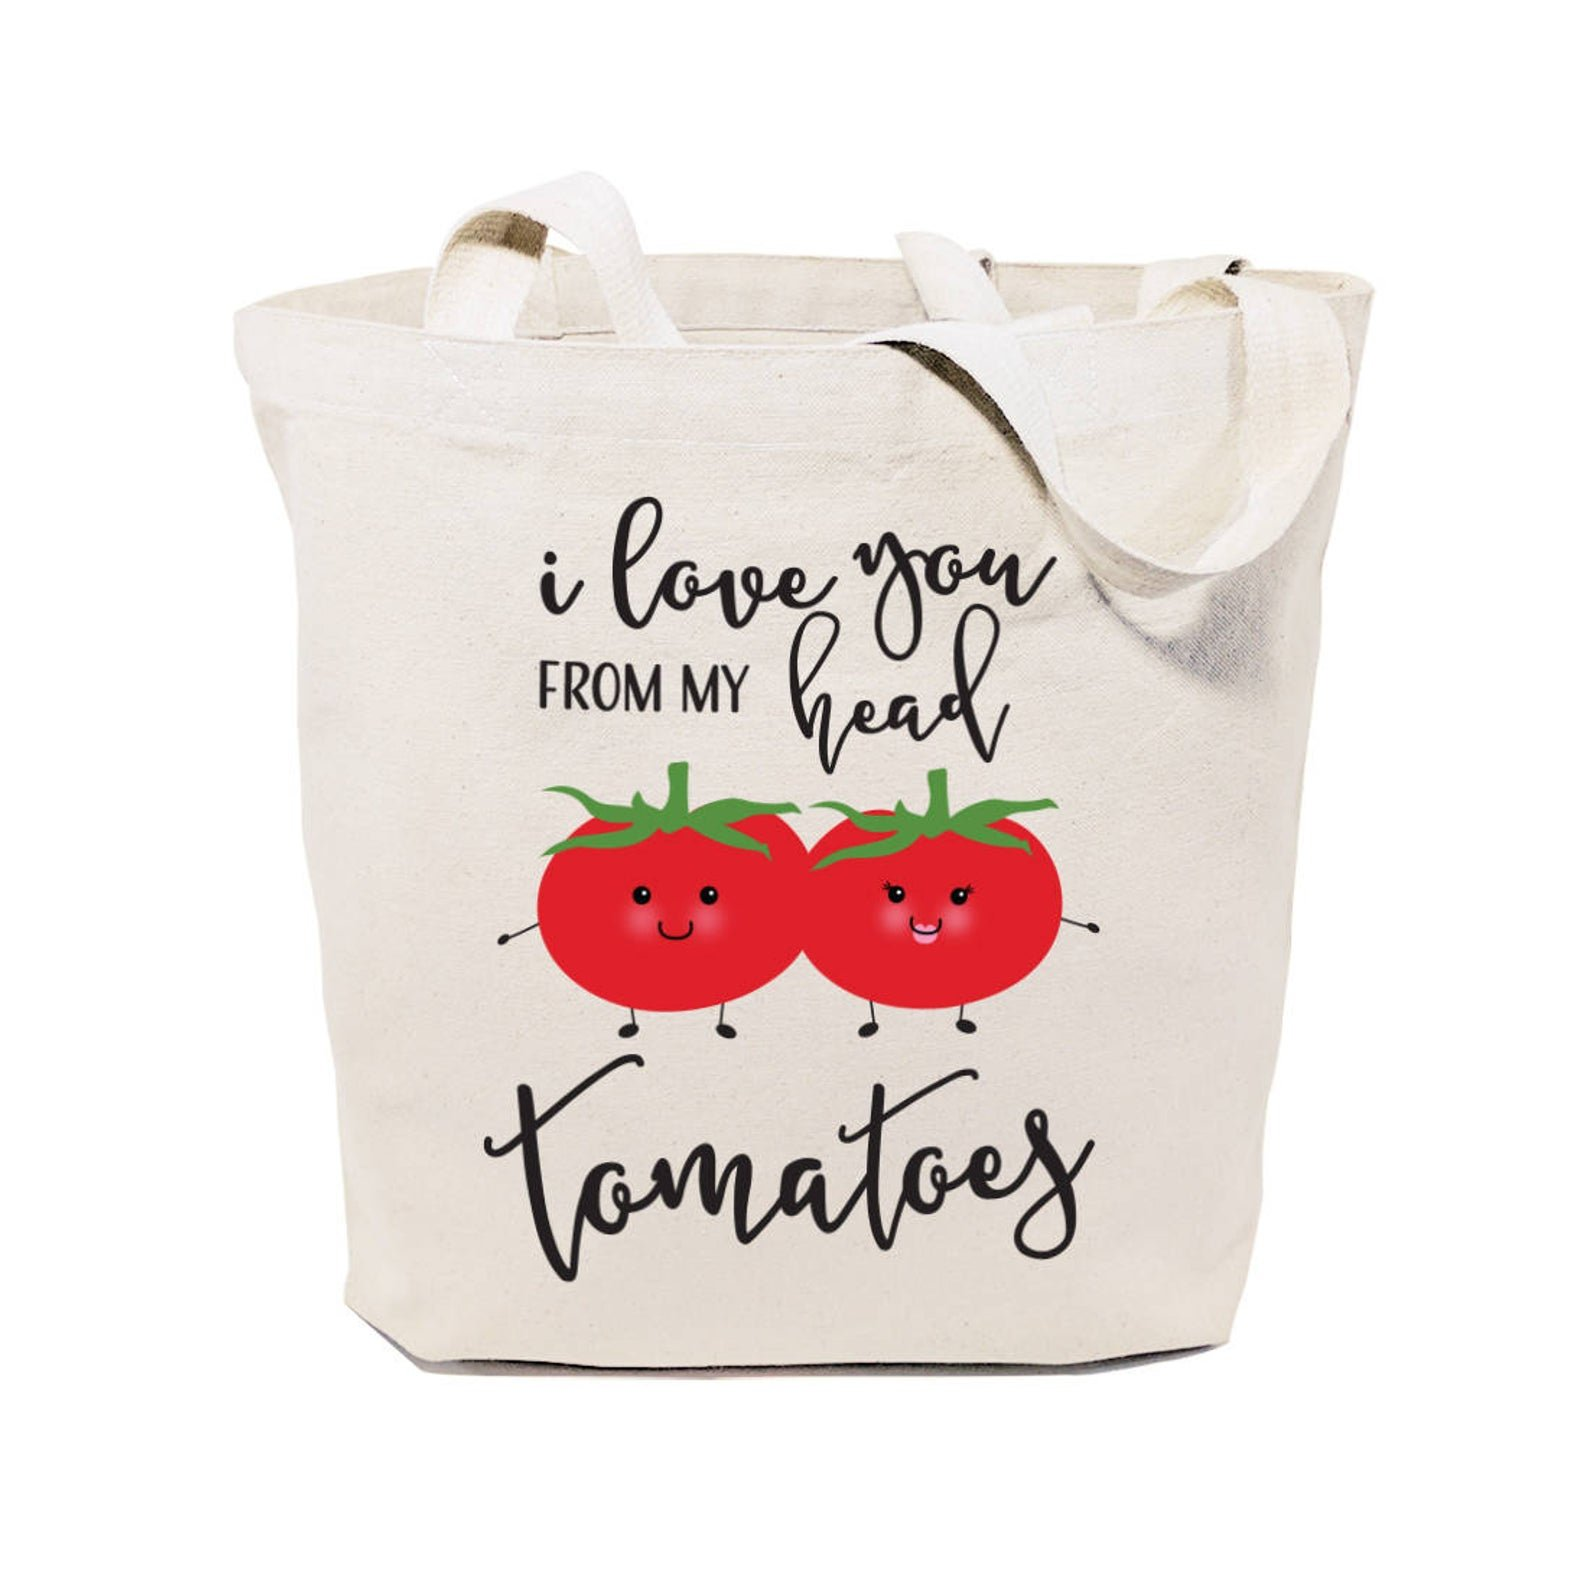 tote bag that says i love you from my head tomatoes with tomatoes on it